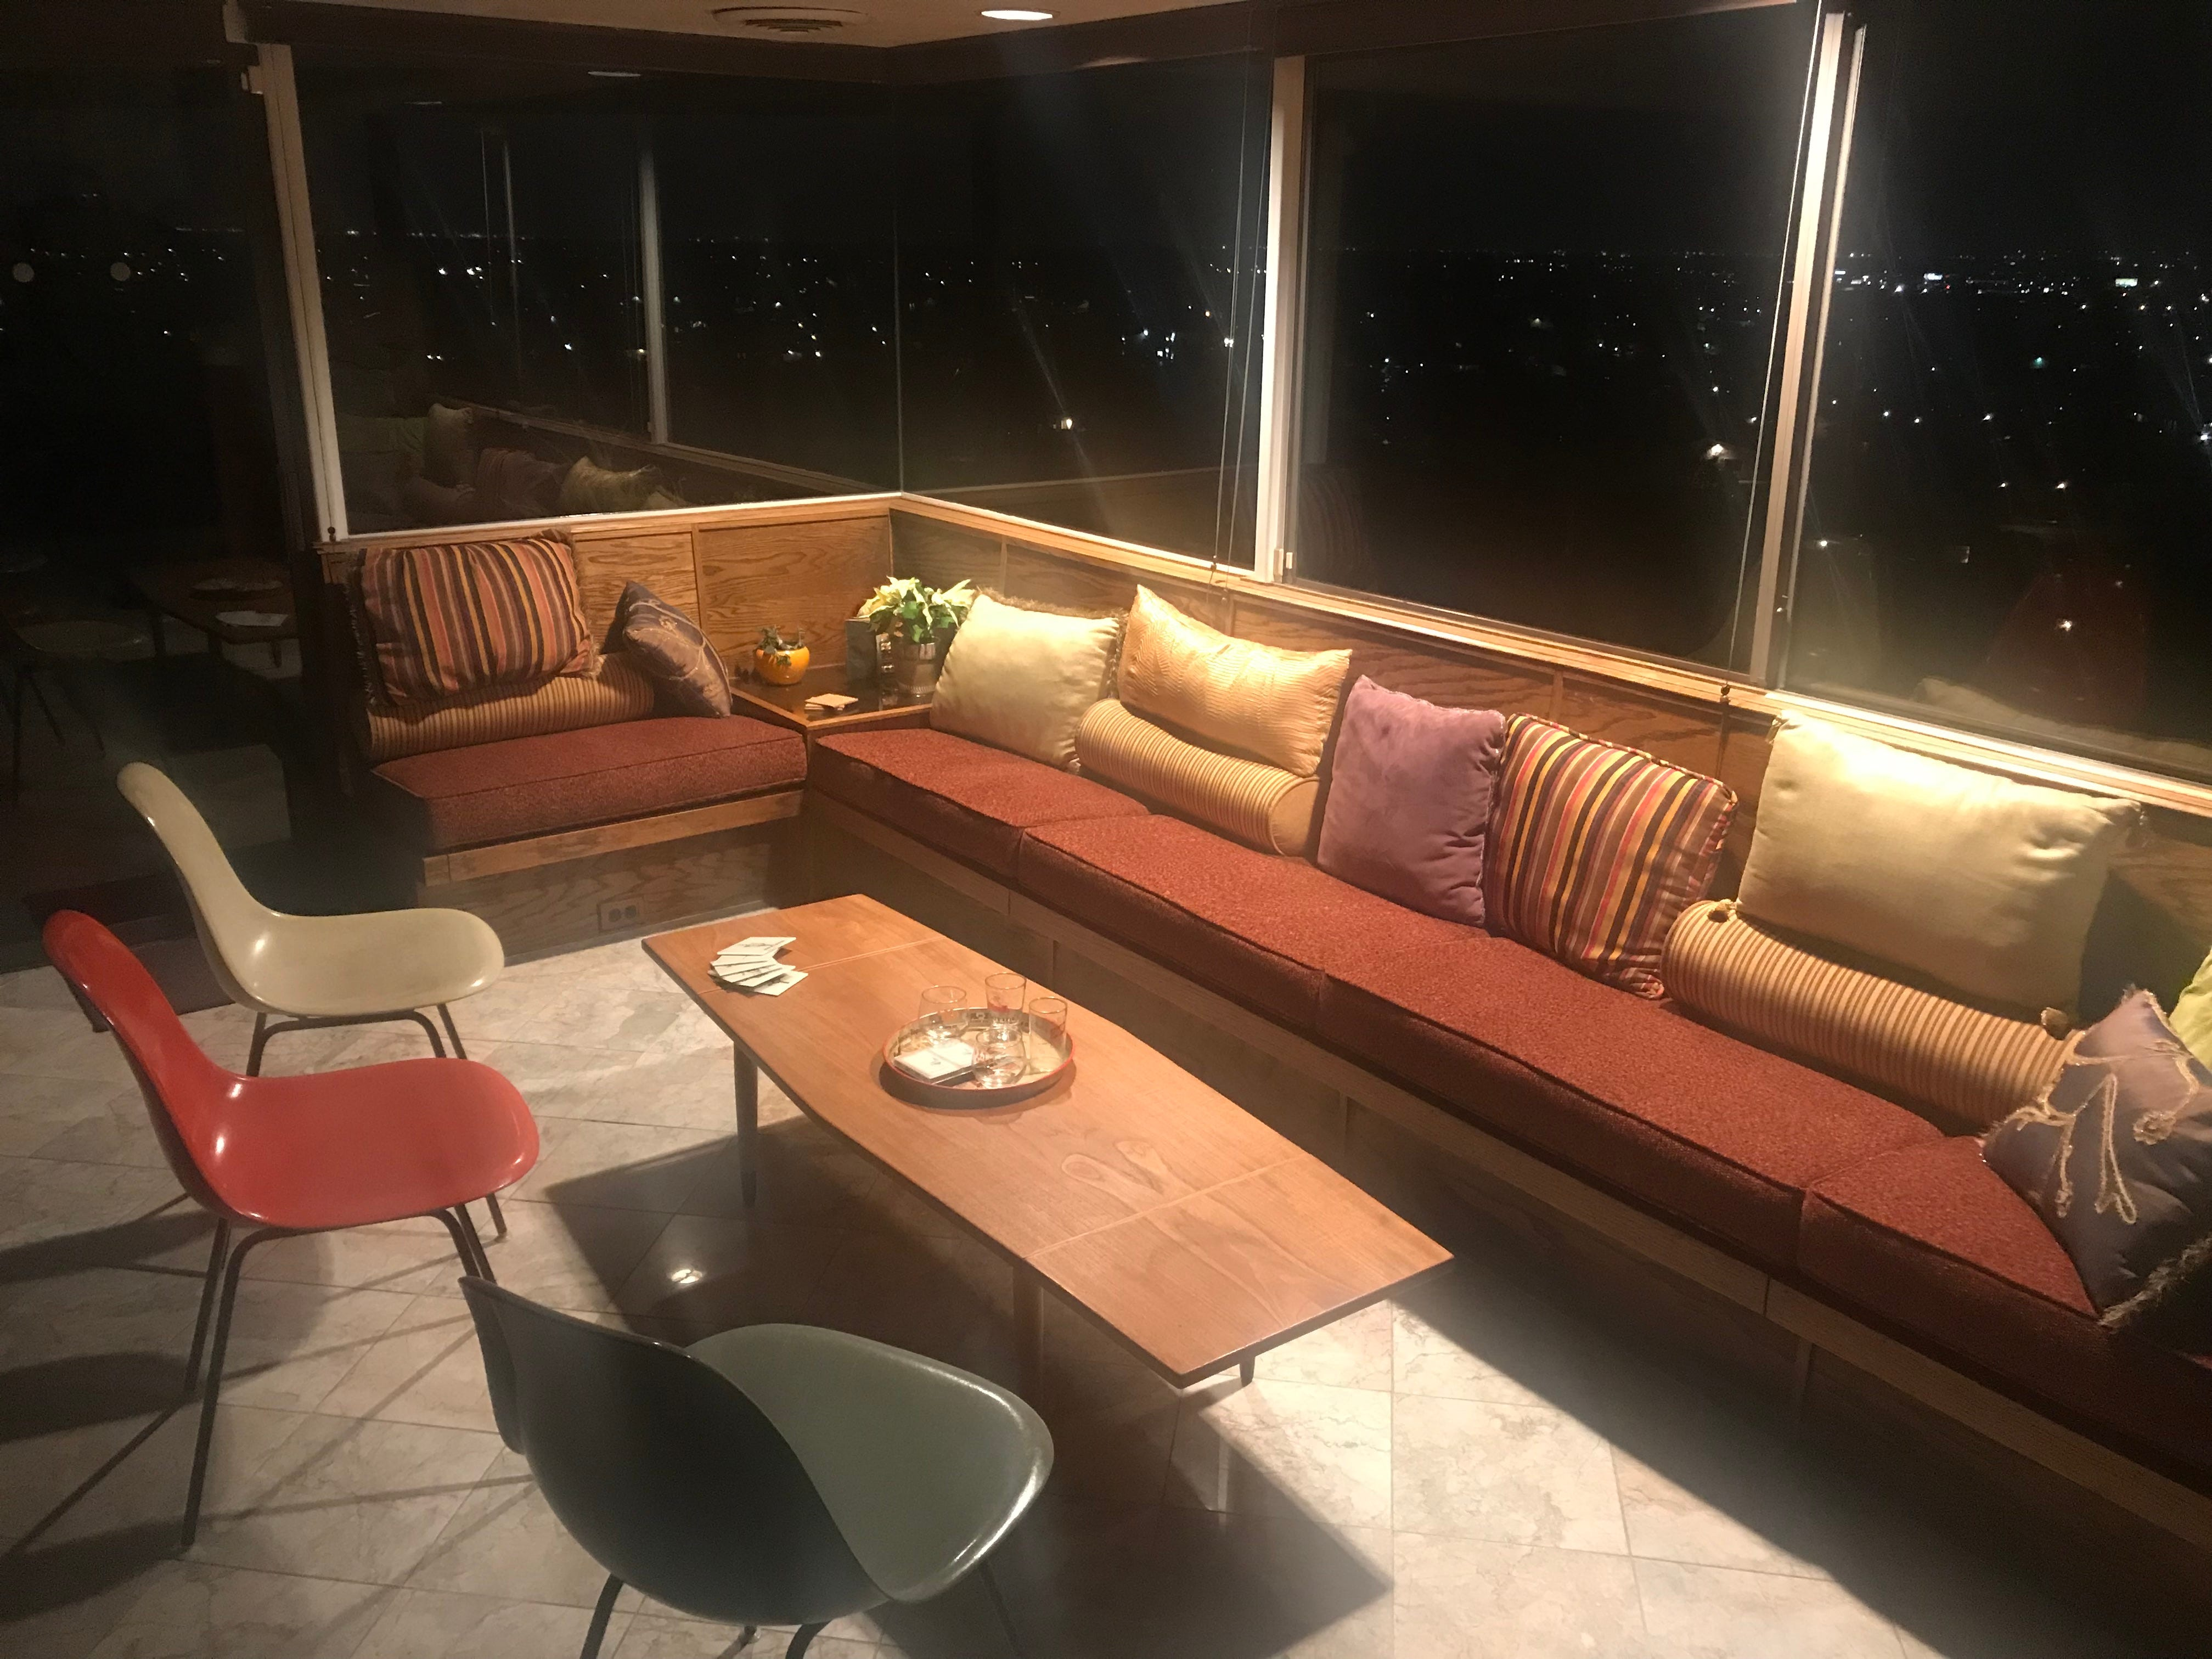 Yeager often designed built-in bench seating with functional storage. The seating in this case was placed to take advantage of 285-degree views of the Valley below. The Herman Miller chairs were a gift from Miller himself.